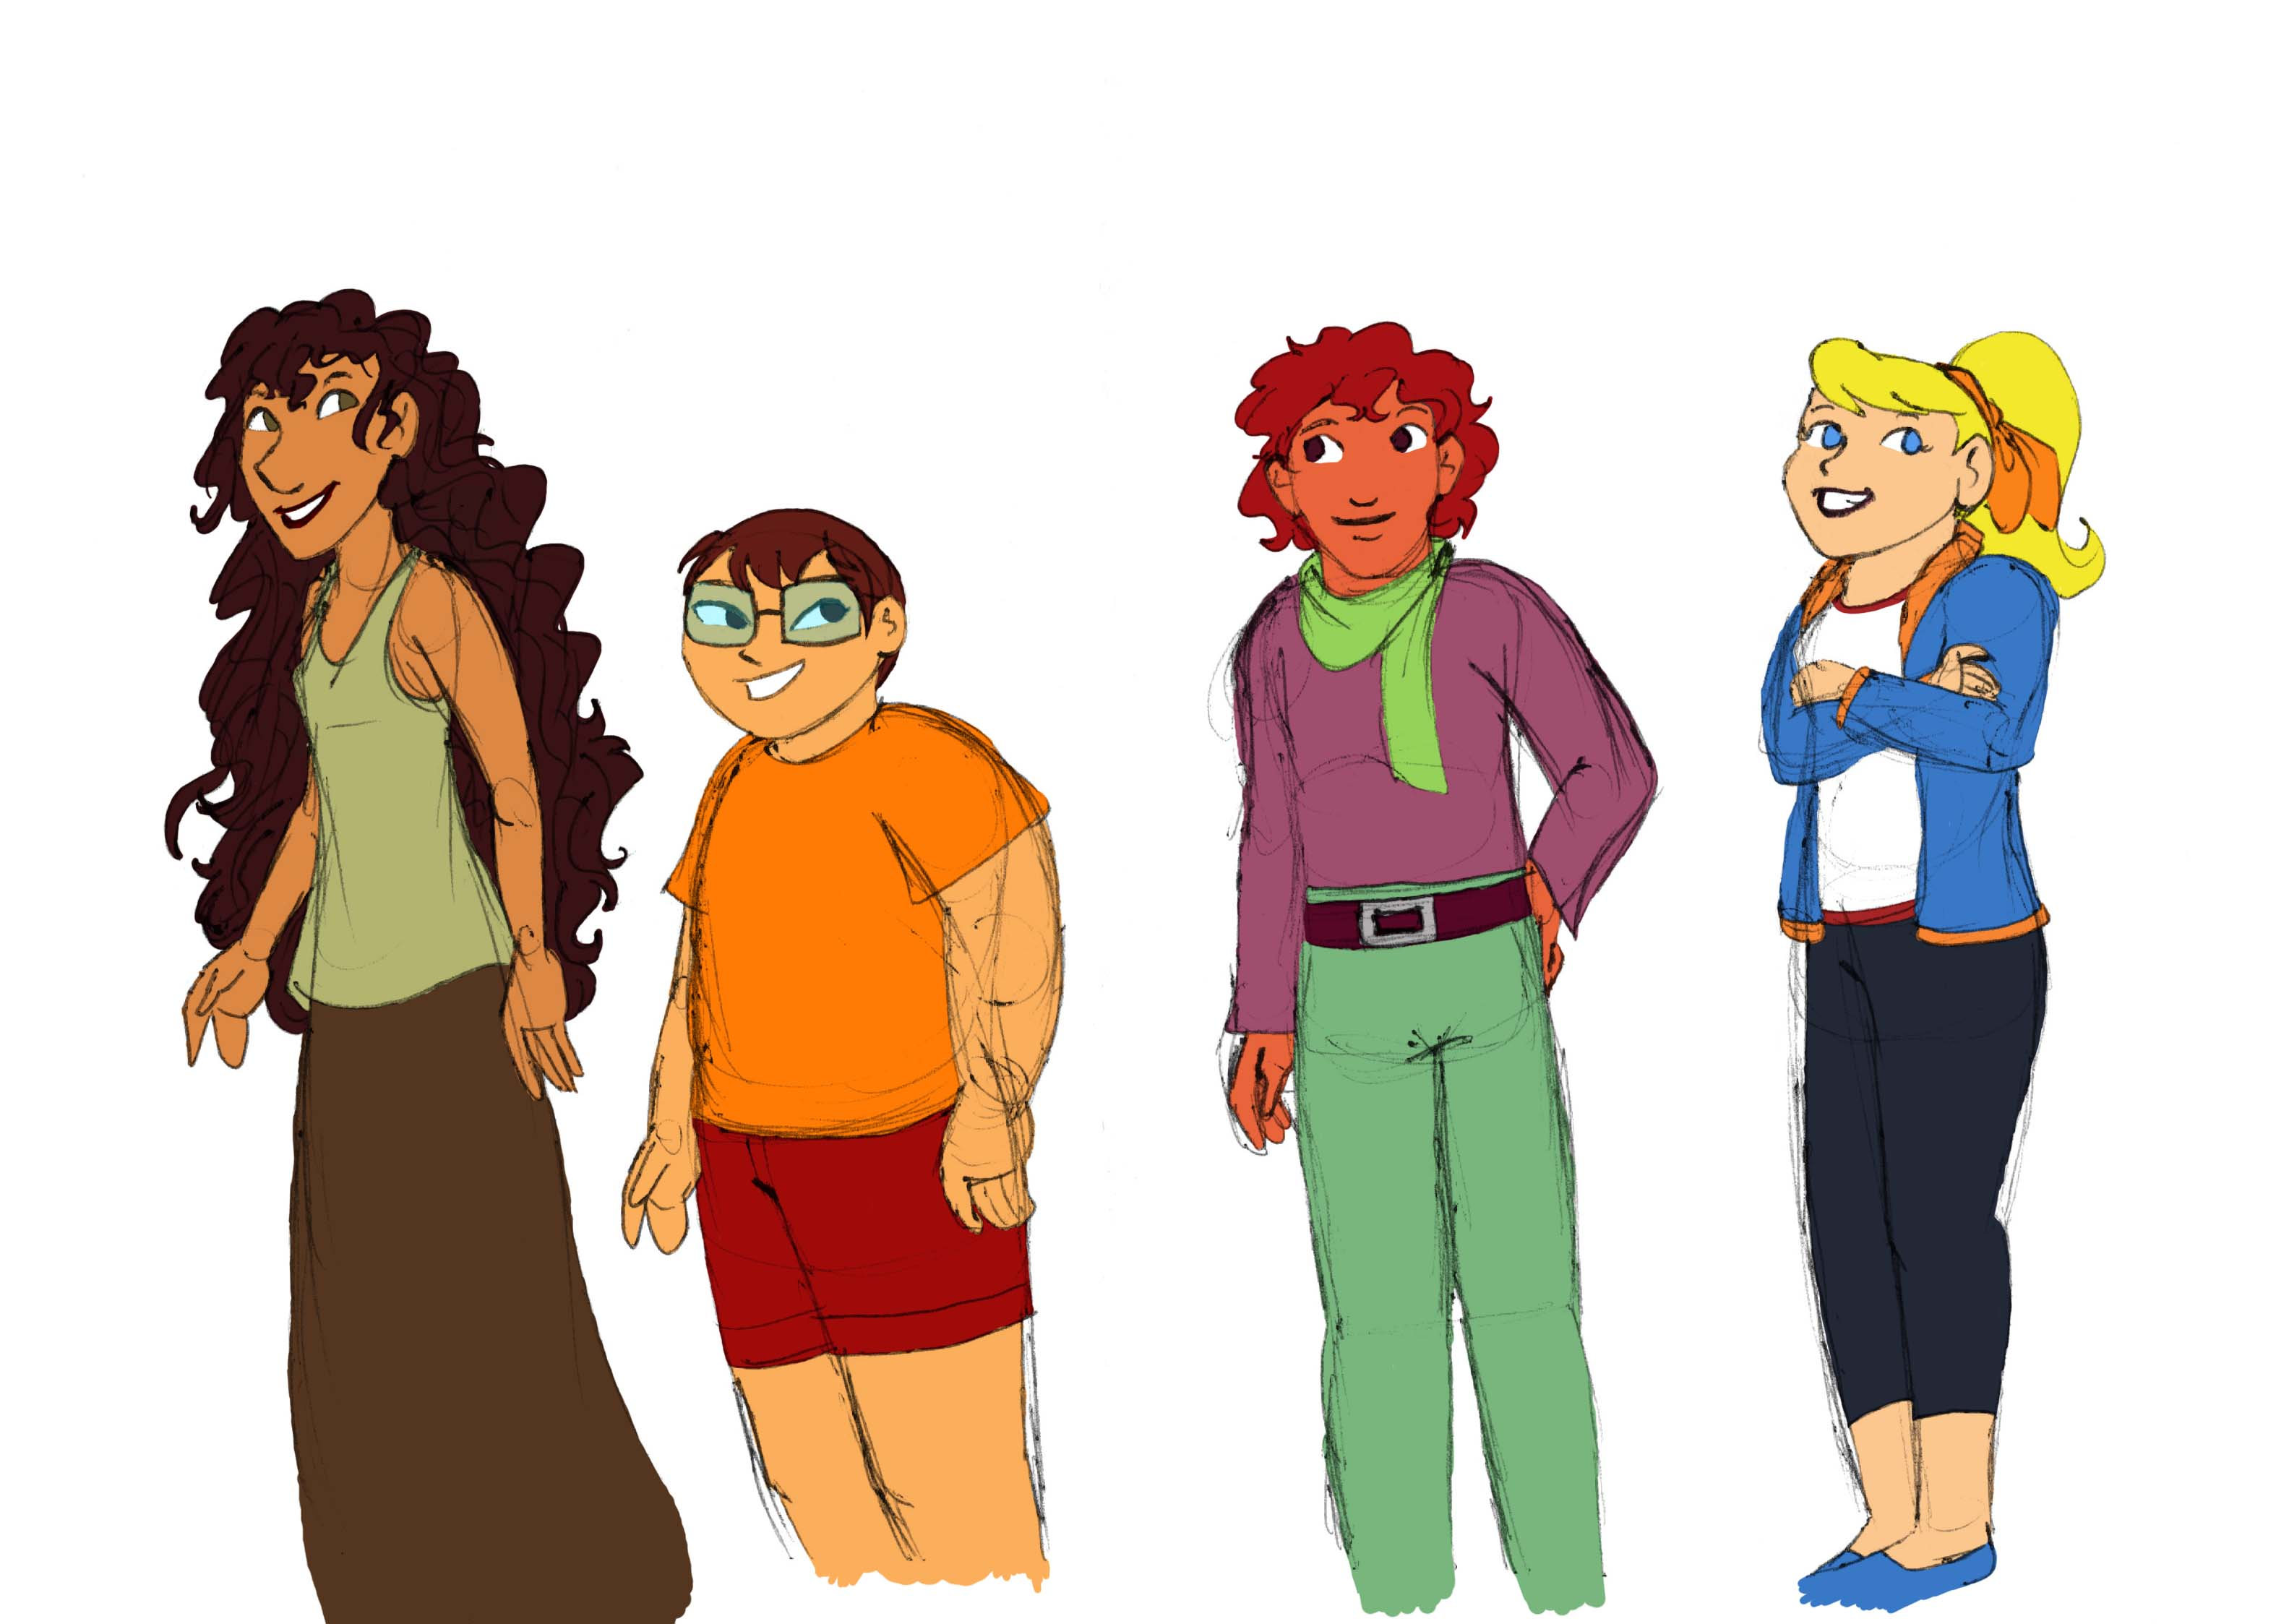 Another Scooby Doo Au By Brensey On Deviantart